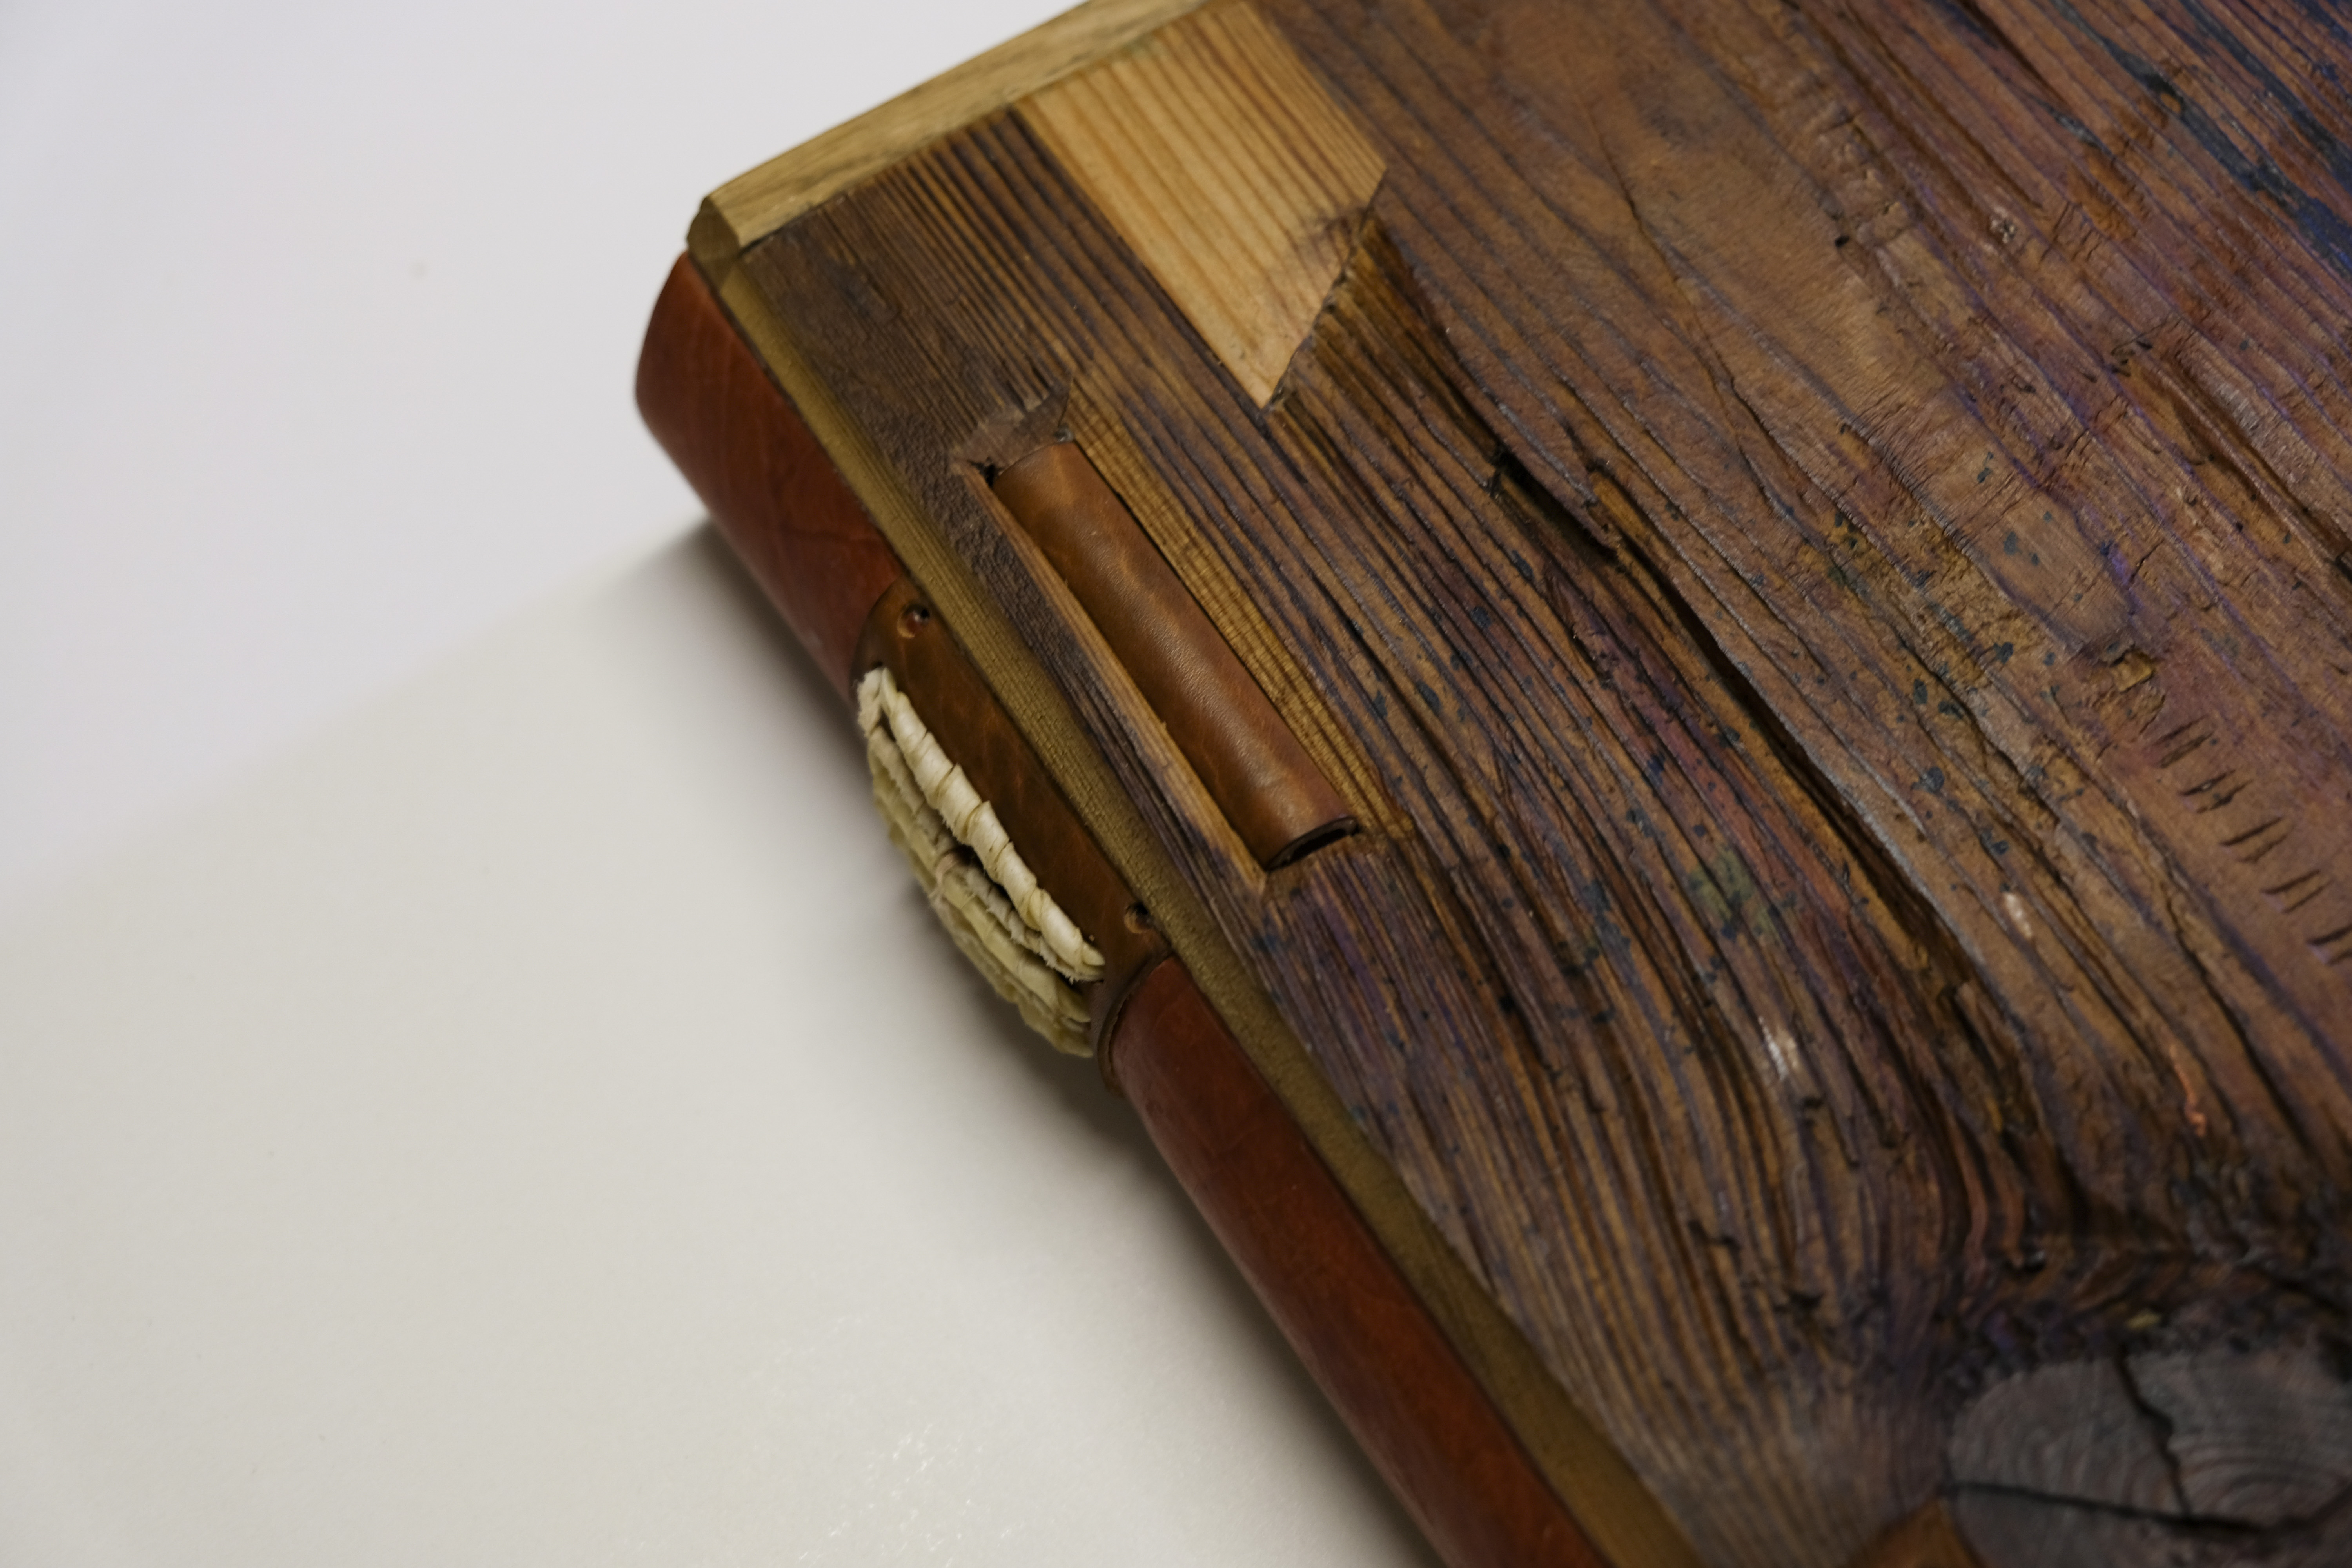 Poetics bound in wood boards